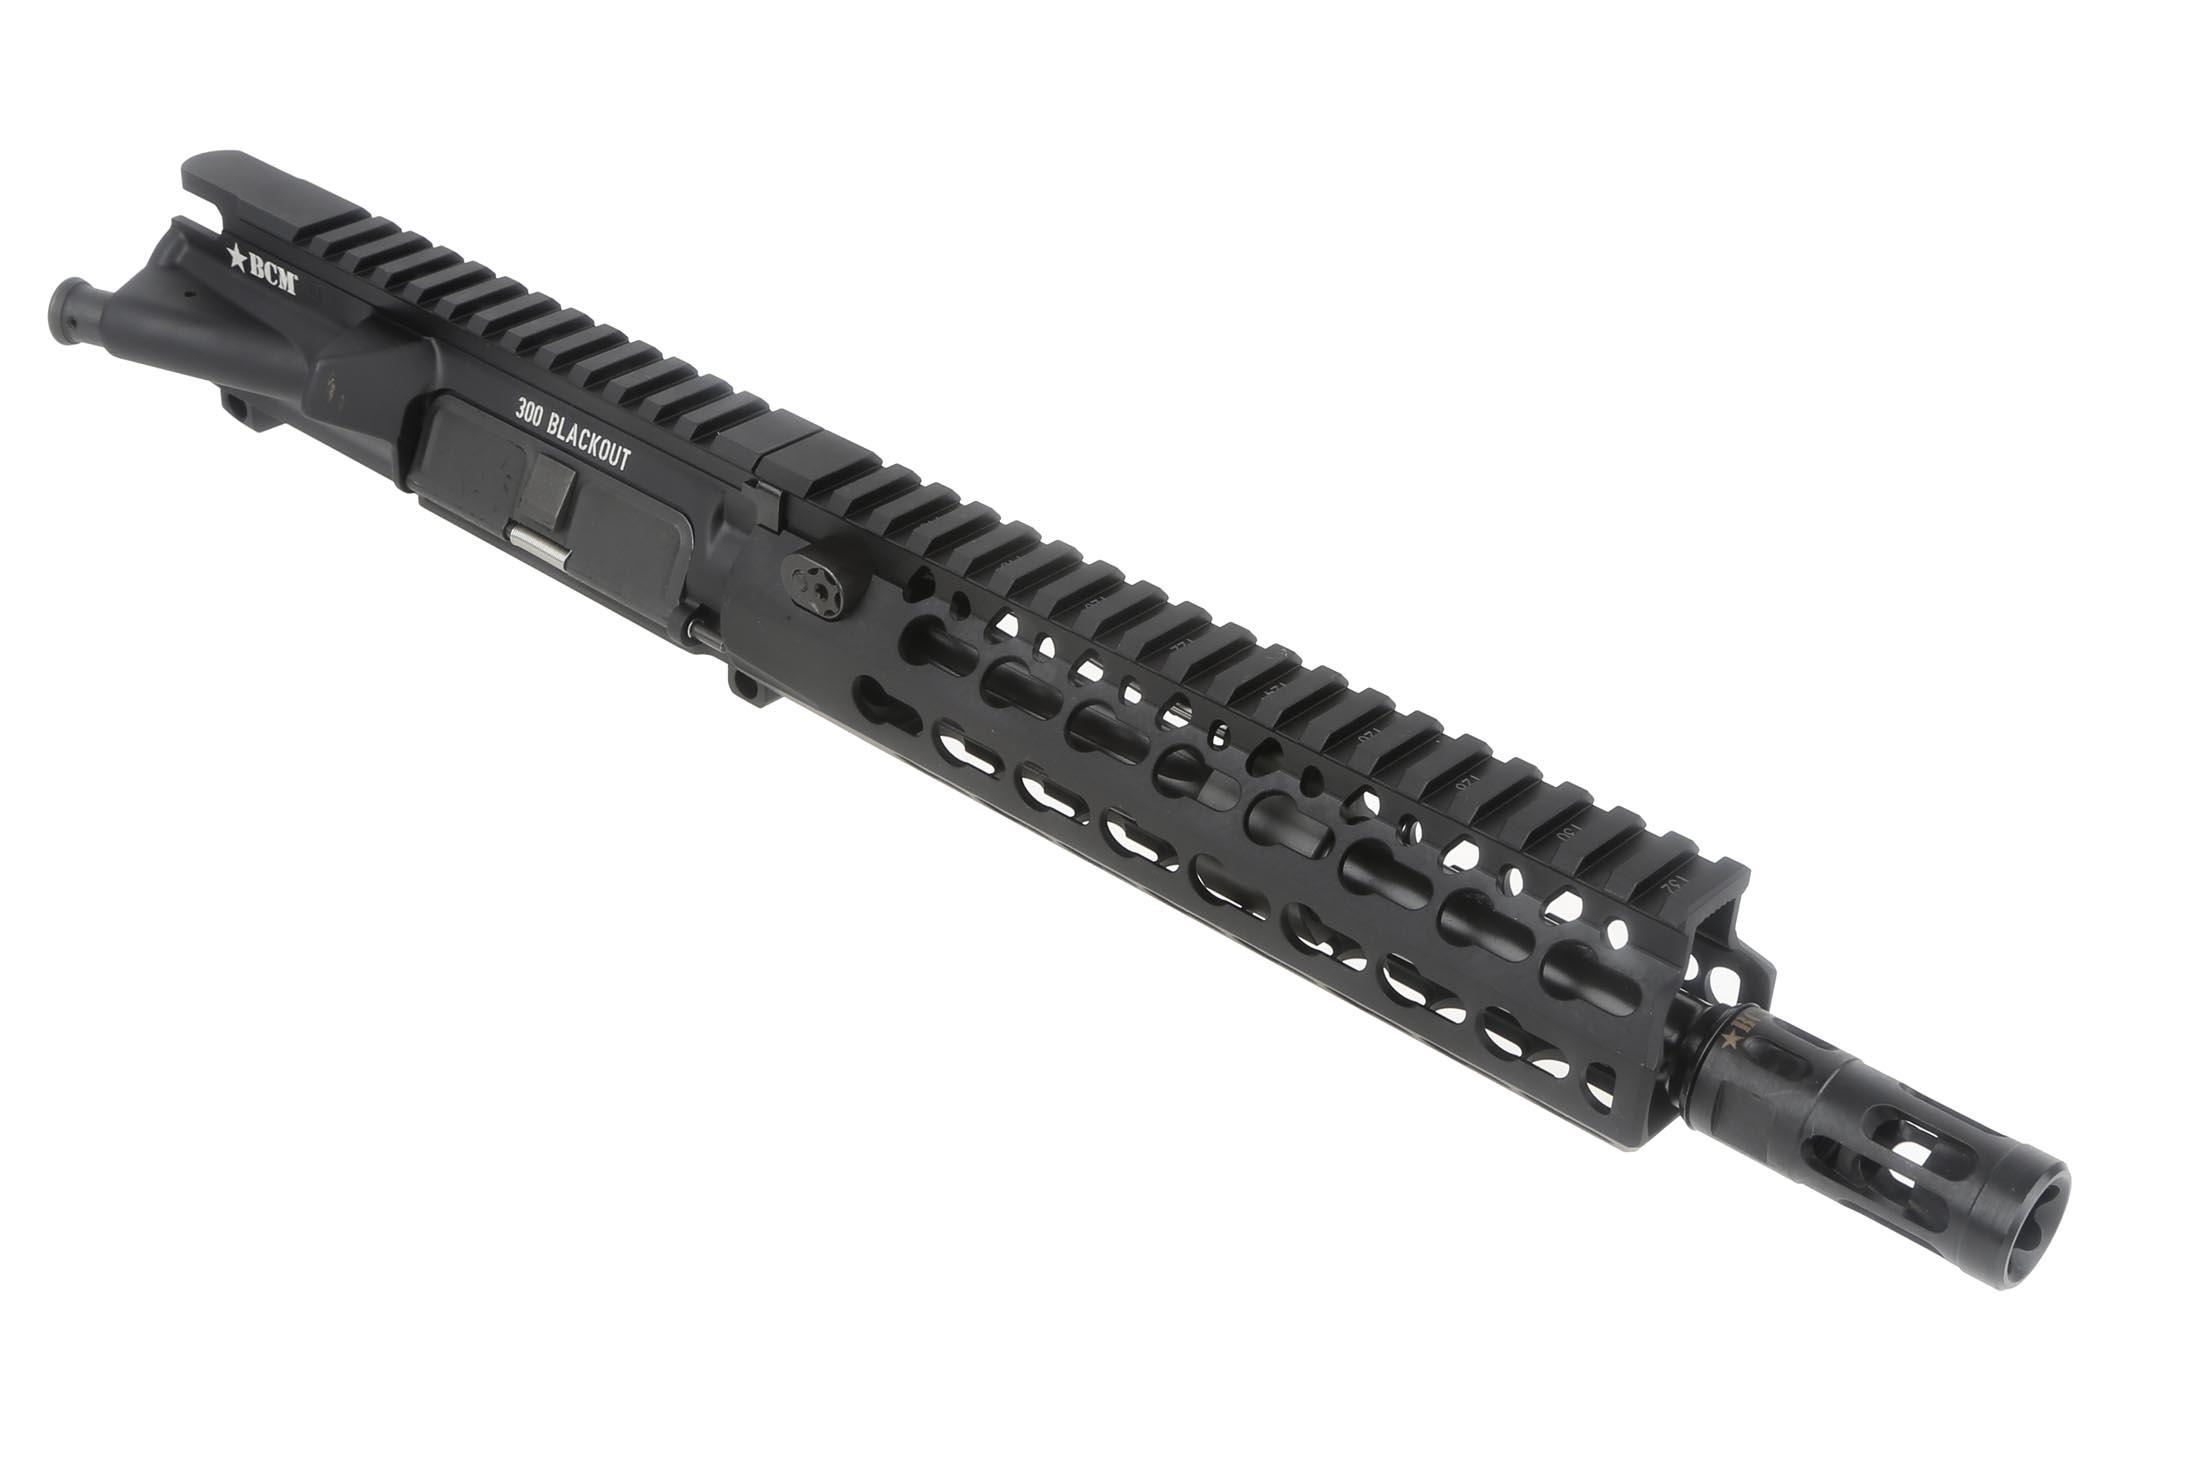 The Bravo Company 300 blackout barreled upper receiver features a 9 inch tapered barrel